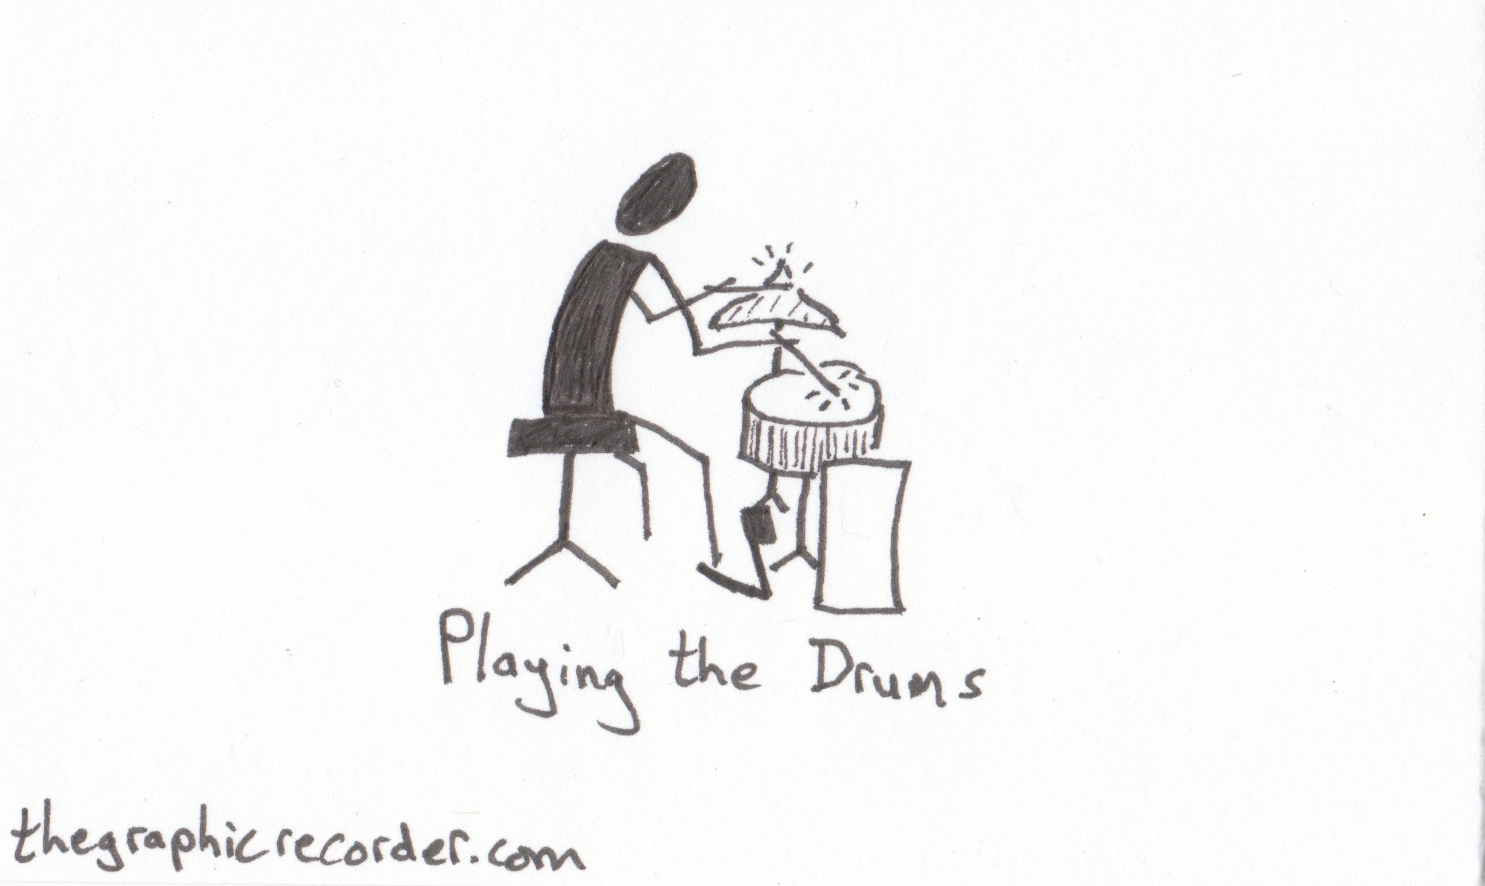 The Graphic Recorder - Note Card Sketch Notes - Visual Vocabulary - Stick Figure Playing the Drums